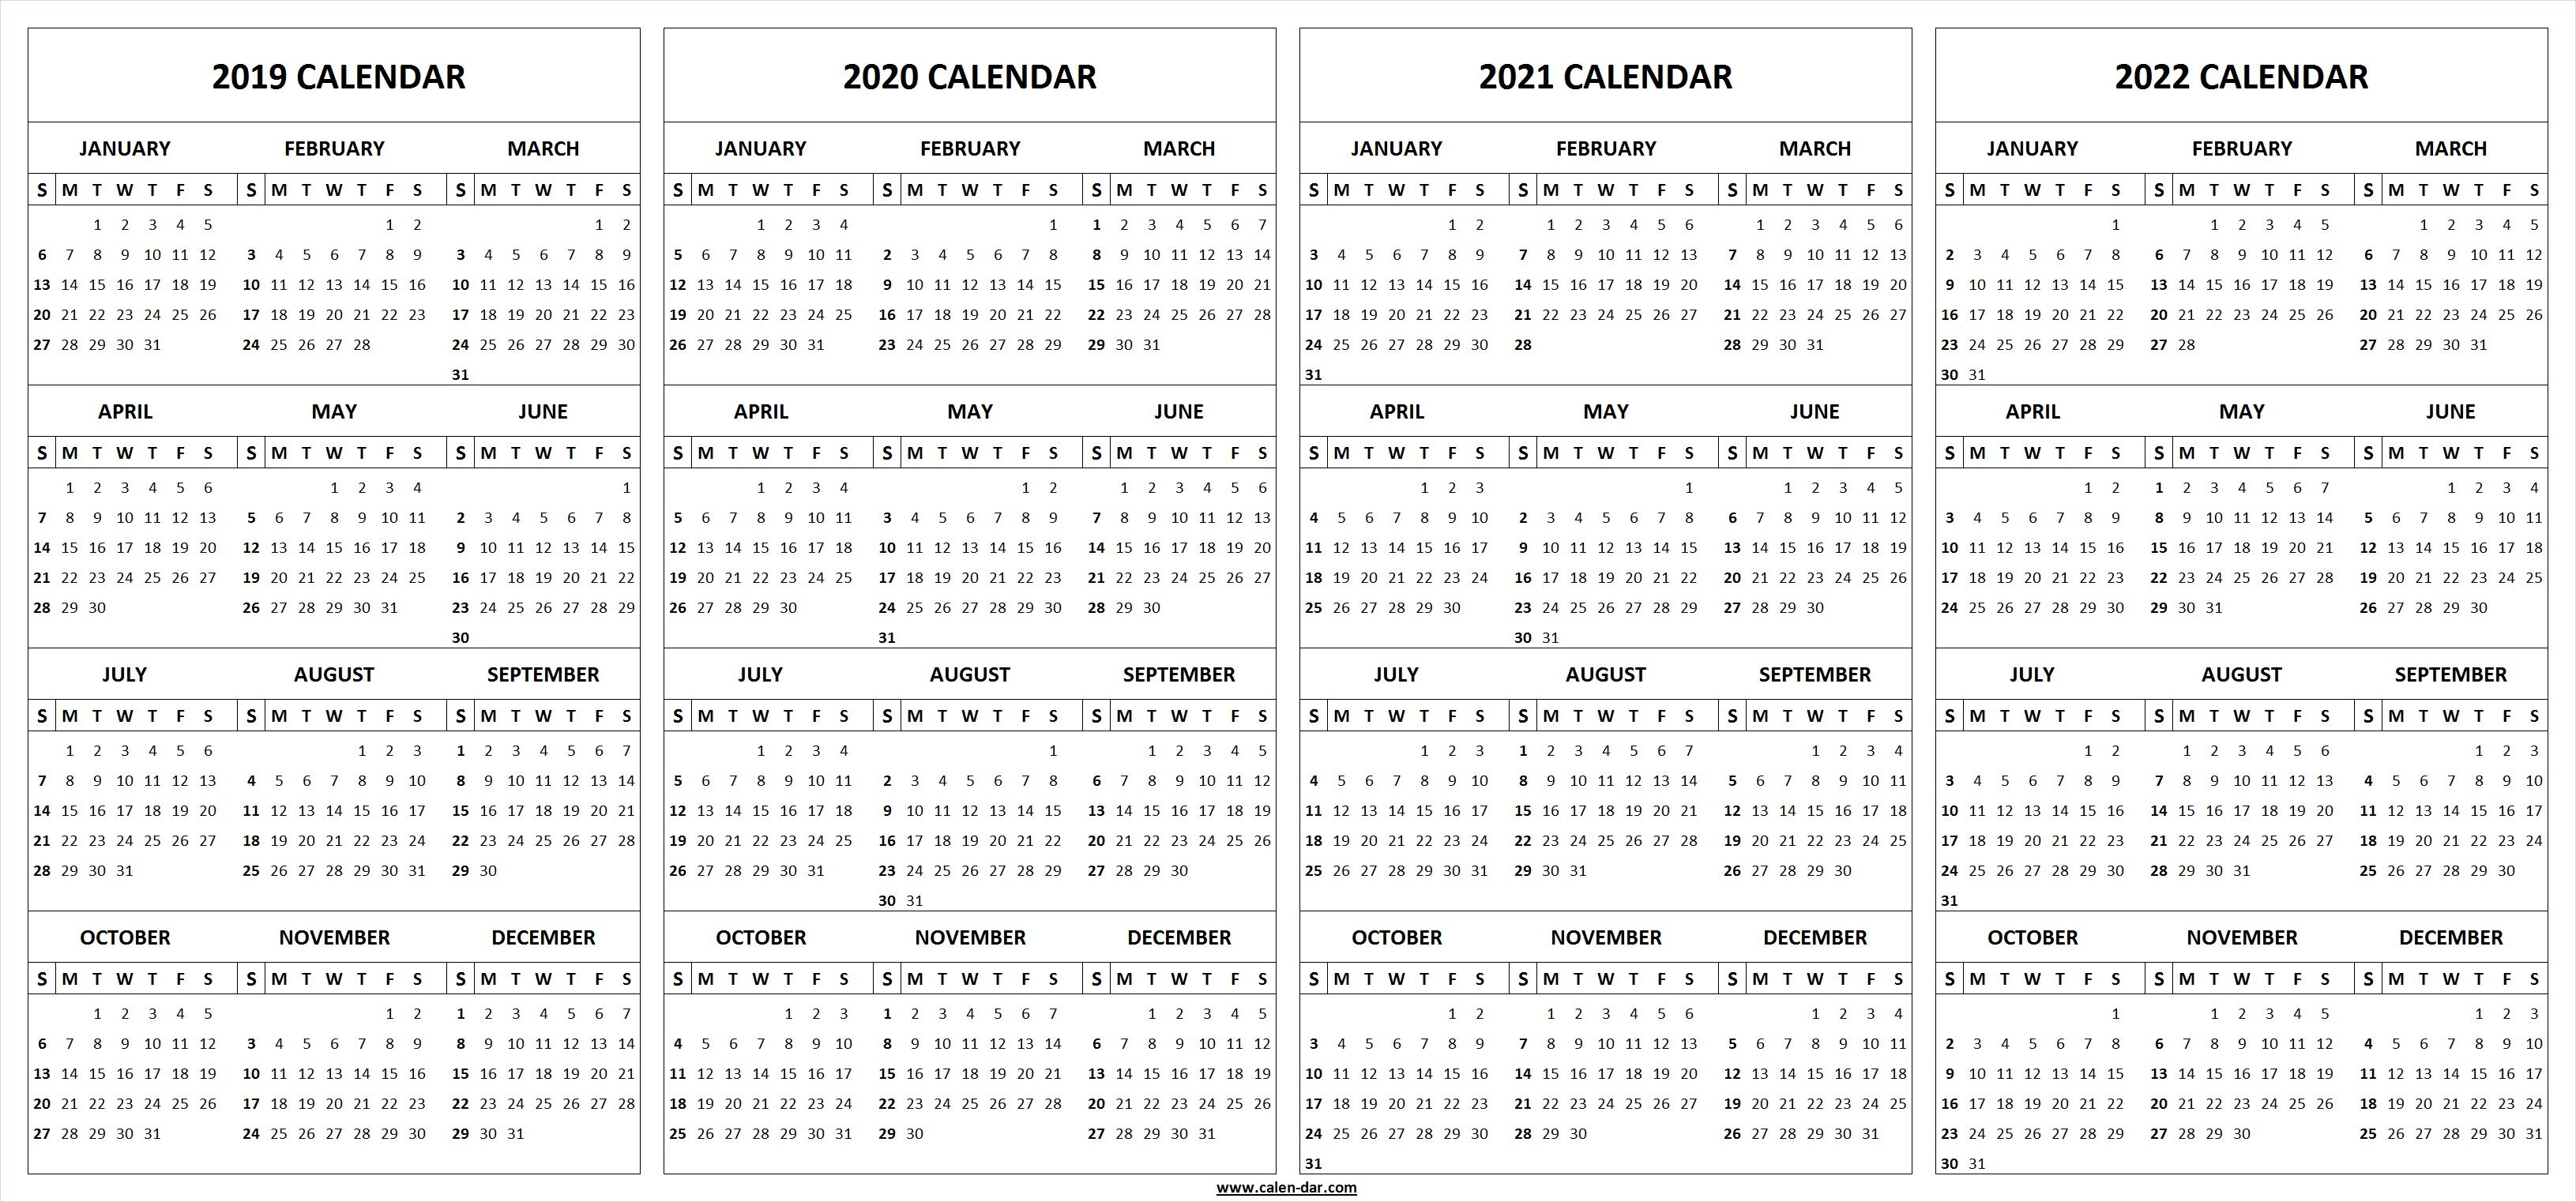 2021-2022 Calendar Excel Background